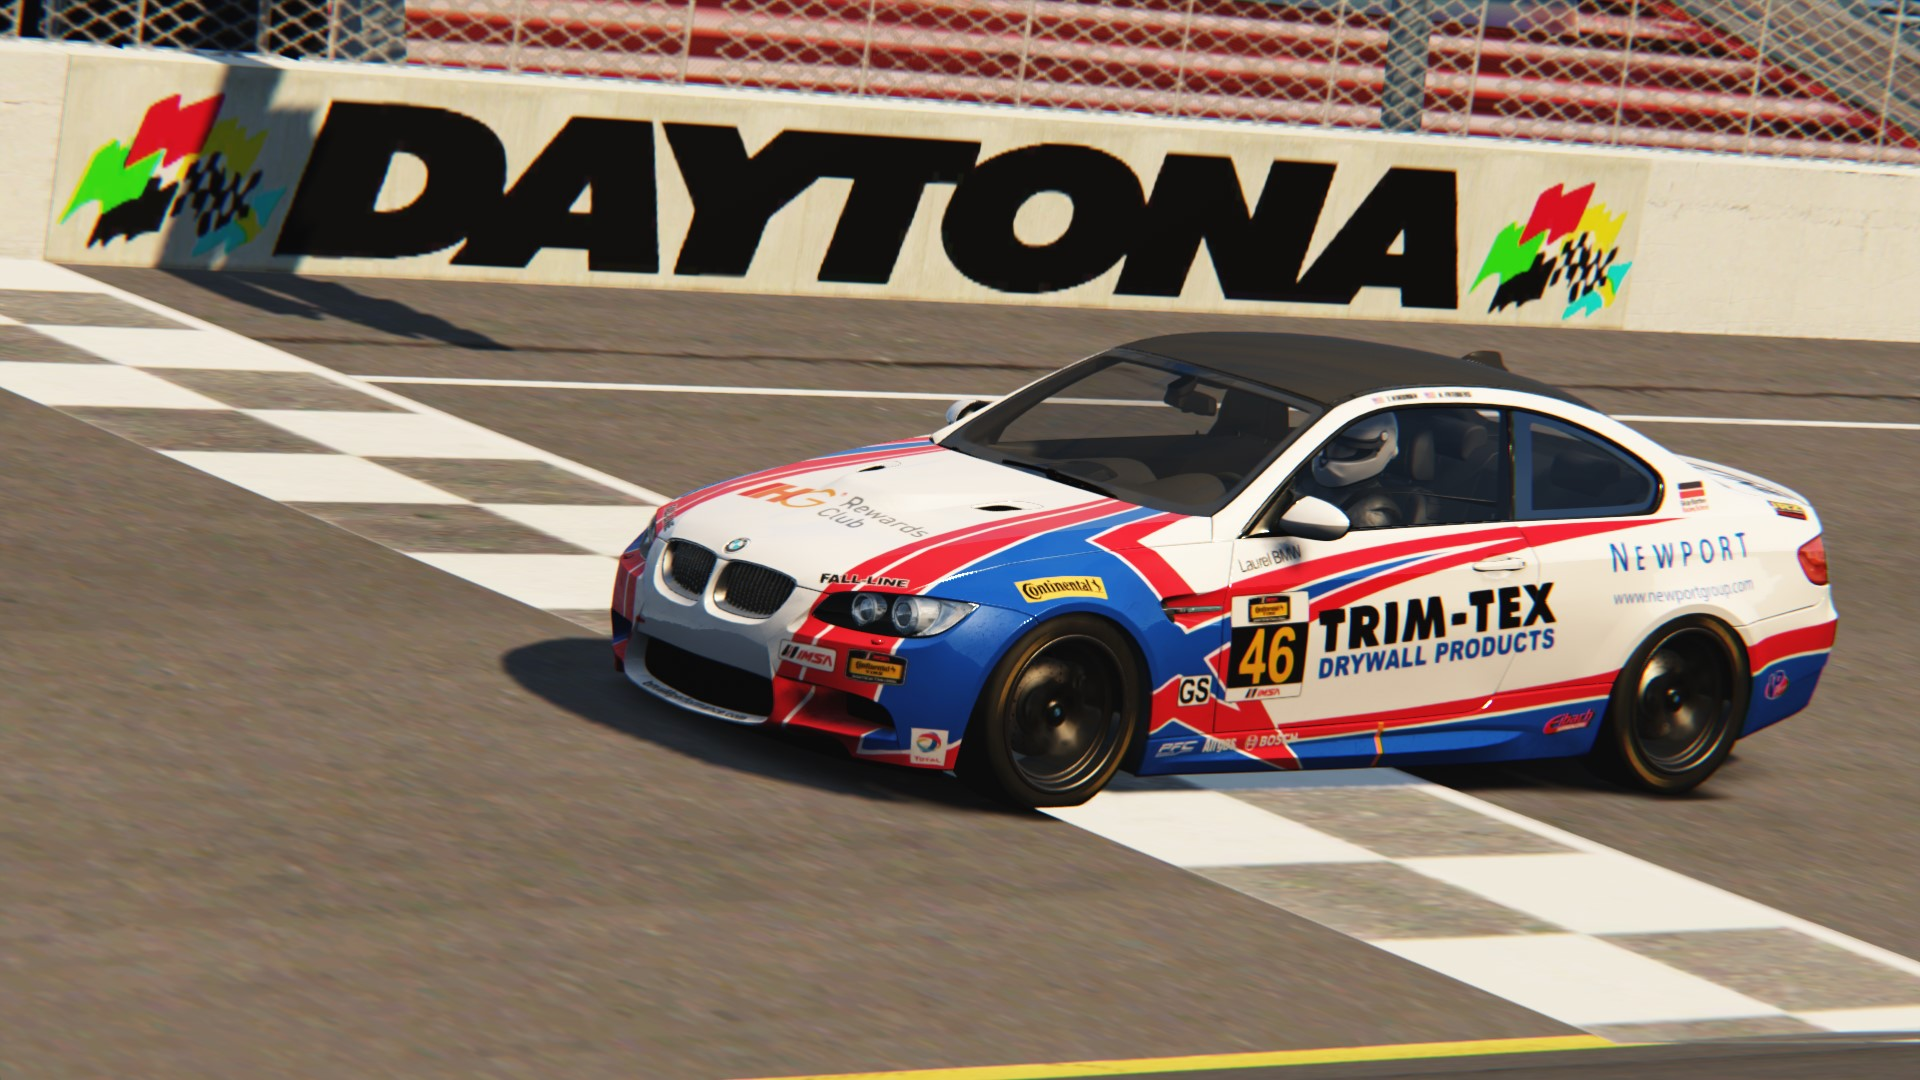 Screenshot_bmw_m3_e92_s1_daytonaroad_9-3-2015-20-0-35.jpg